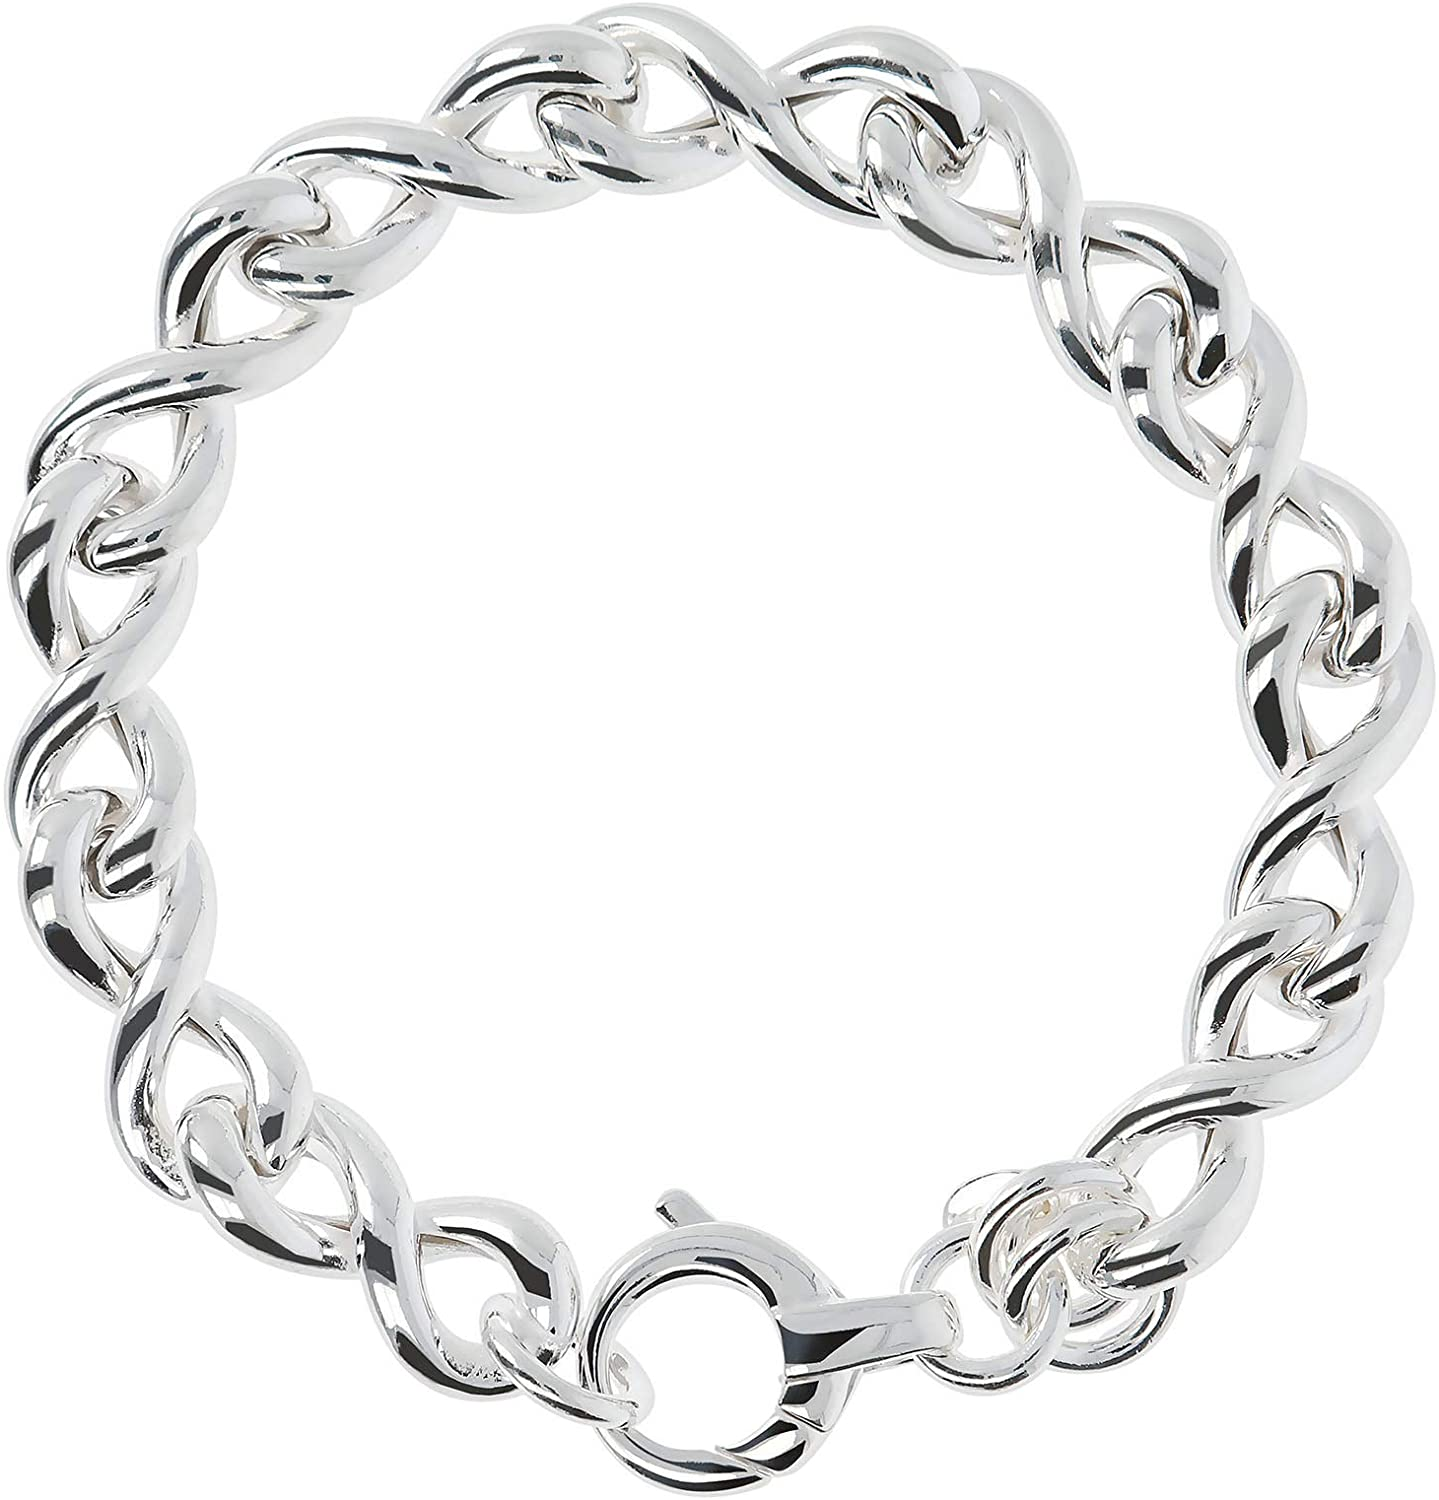 950 Milano Bracelet Sterling Silver 950 Large Infinity Twisted Link Chain for women